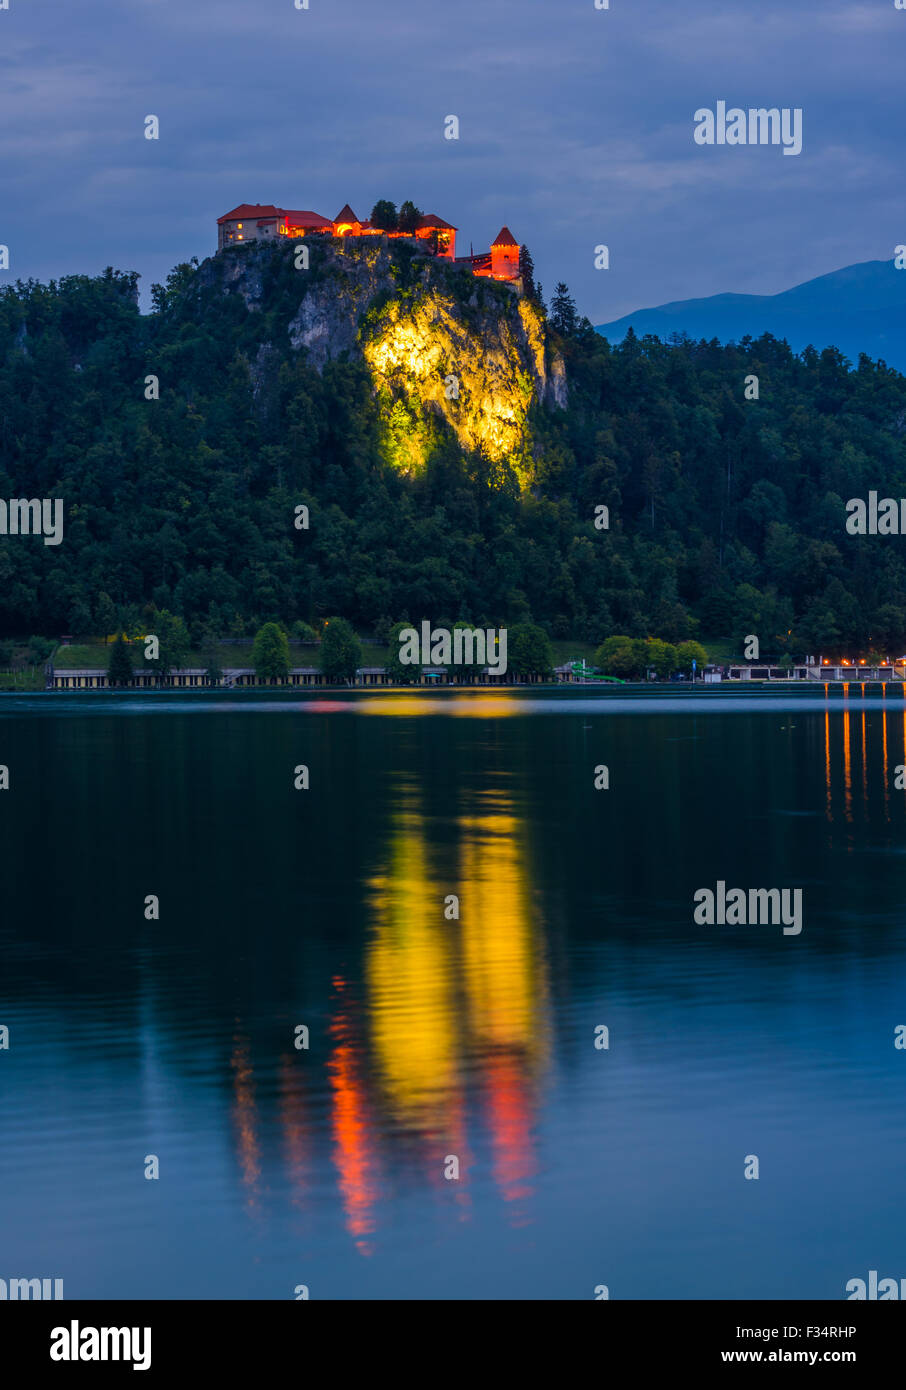 Illuminated Bled Castle at Bled Lake in Slovenia at Night Reflected on Water Surface Stock Photo